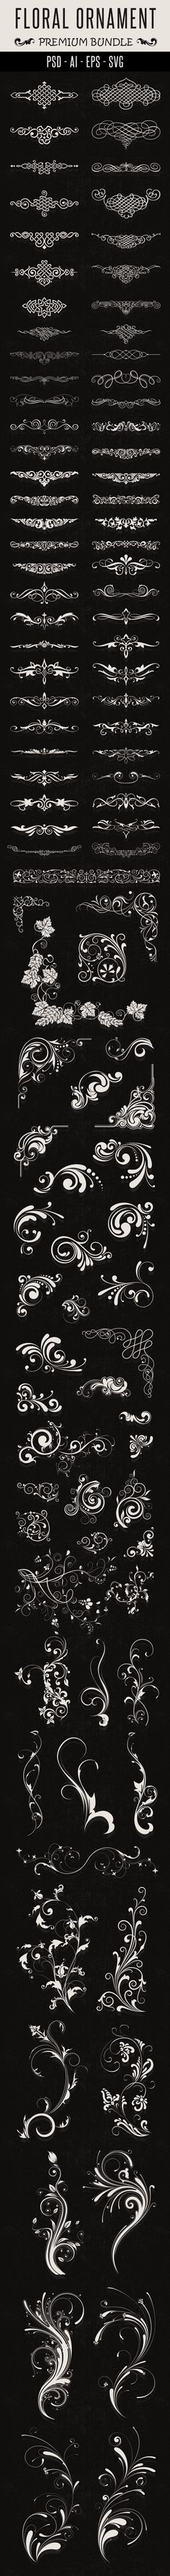 Floral Ornament  by Nhat Tien, via Behance